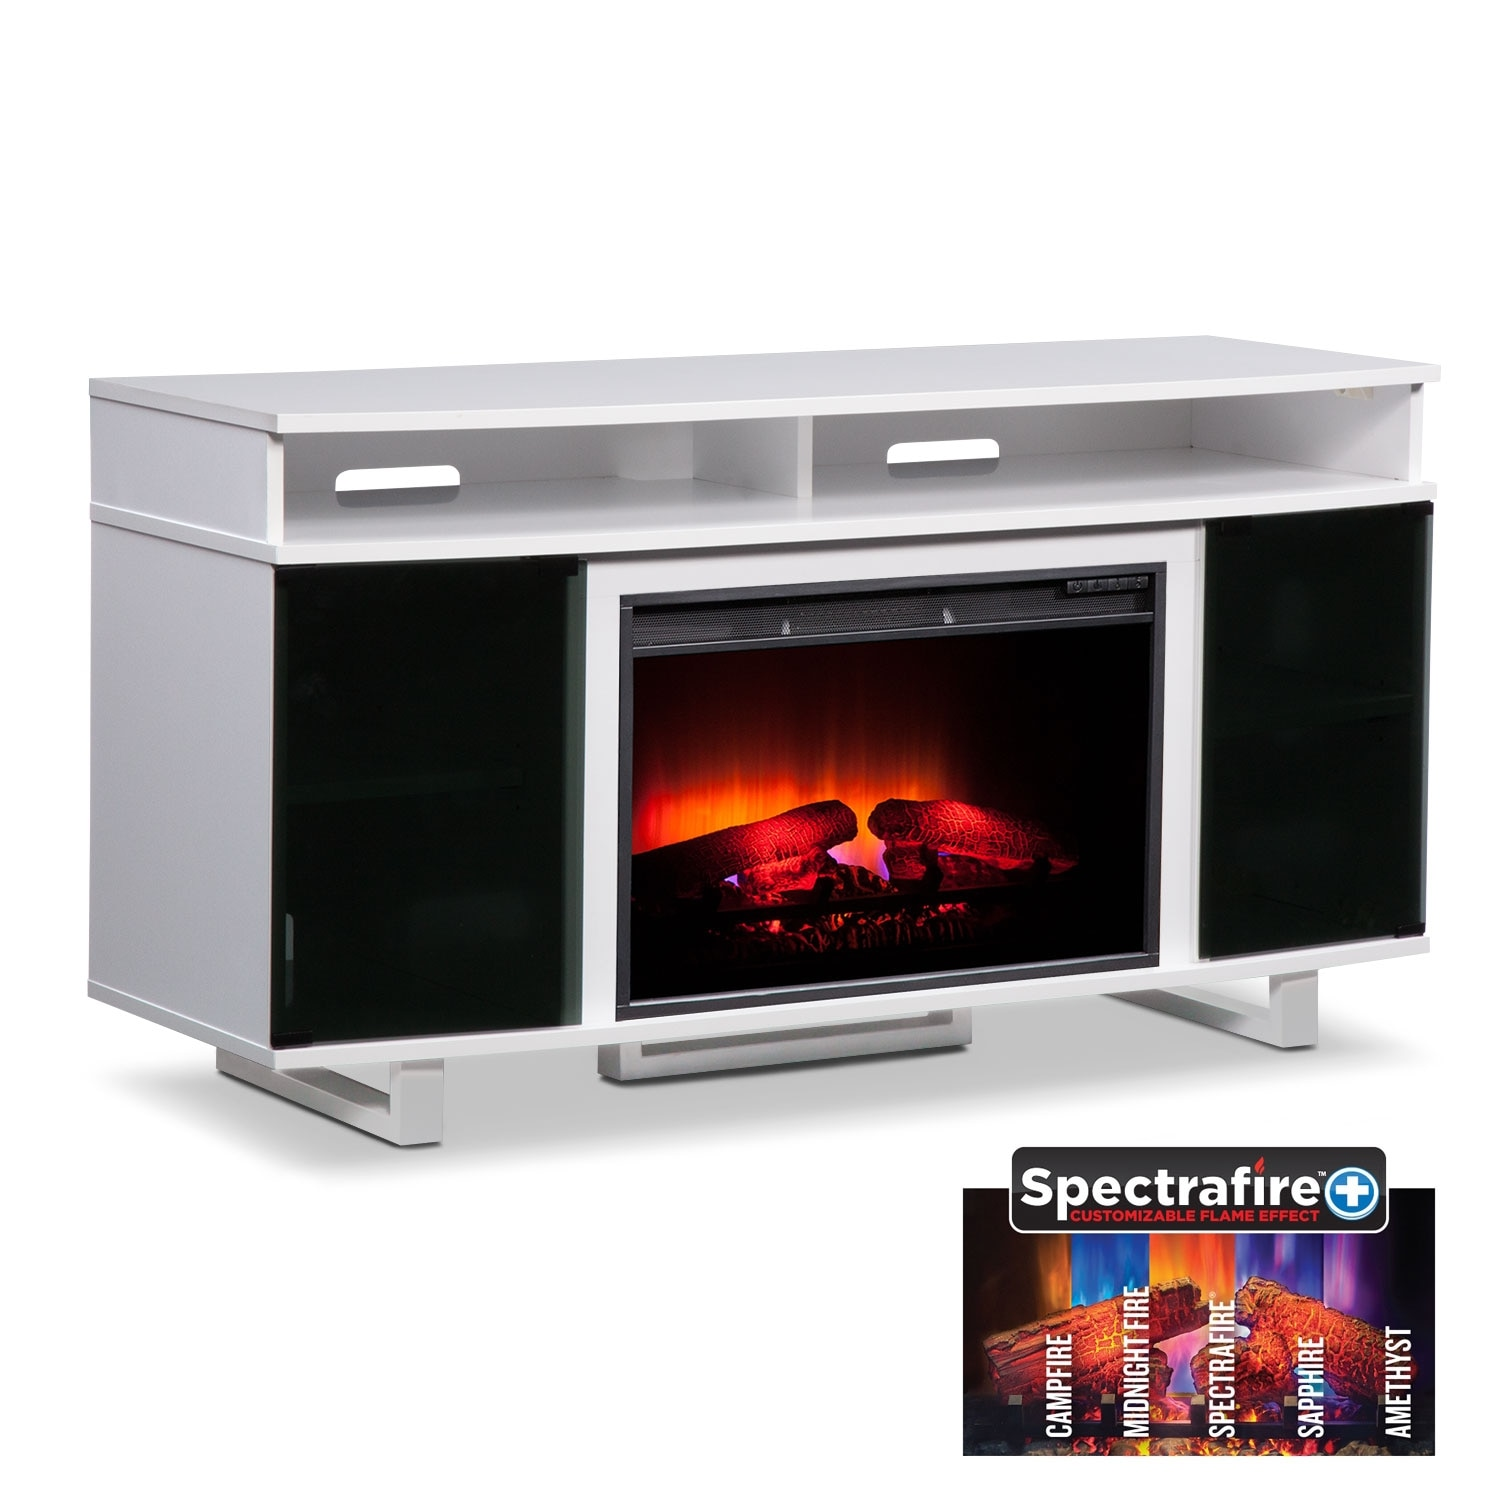 Pacer 56  Traditional Fireplace TV Stand   White. T V Stands   Media Centers   Value City Furniture